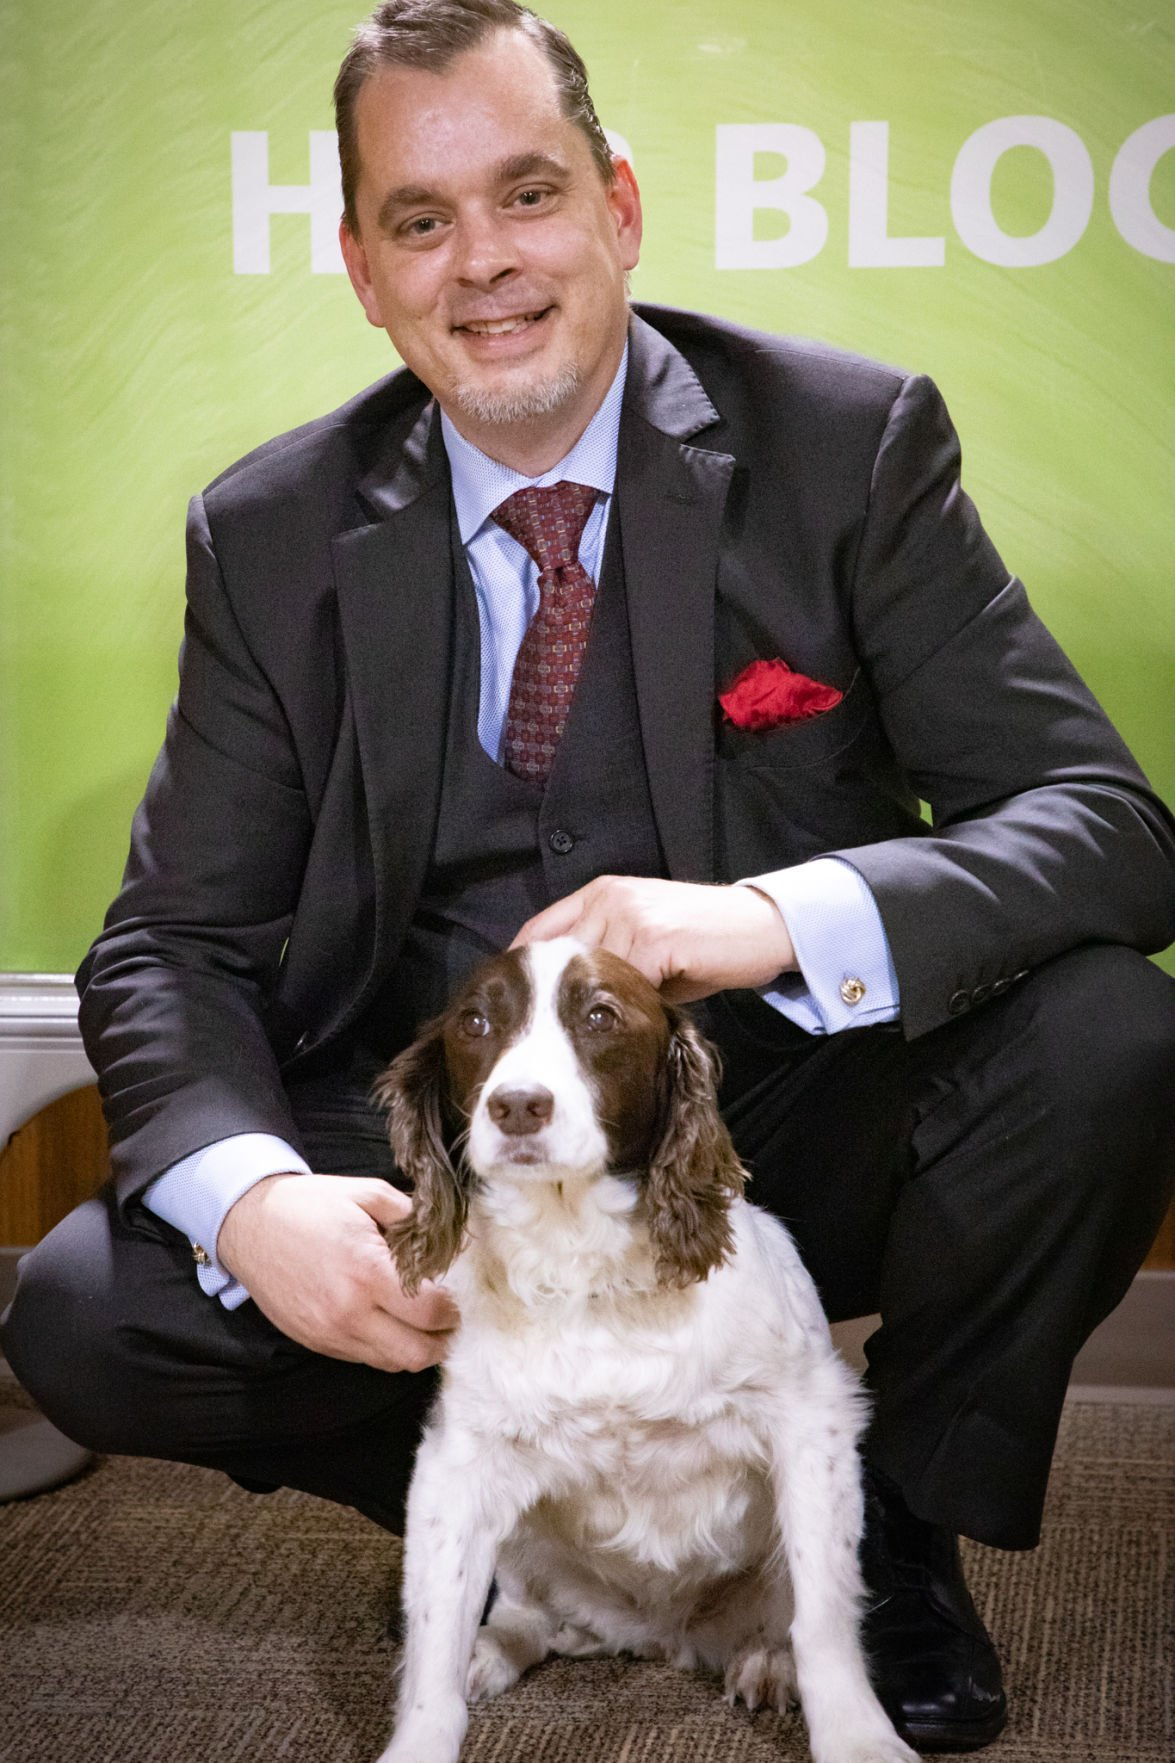 H&R Block Tax Consultant Chris Holloway poses with Millie